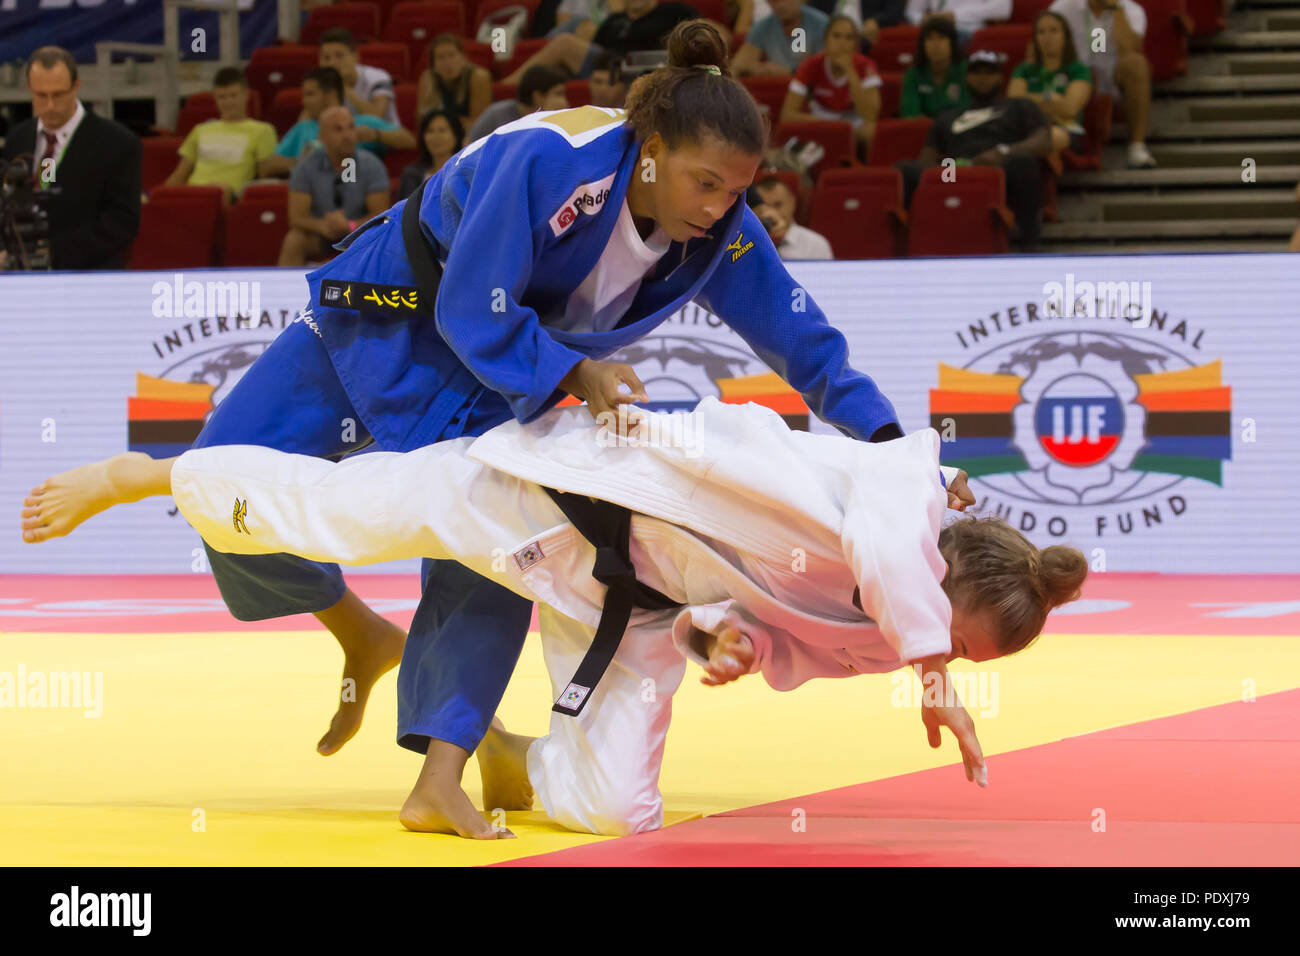 Budapest  10th Aug, 2018  Rafaela Silva (top) of Brazil